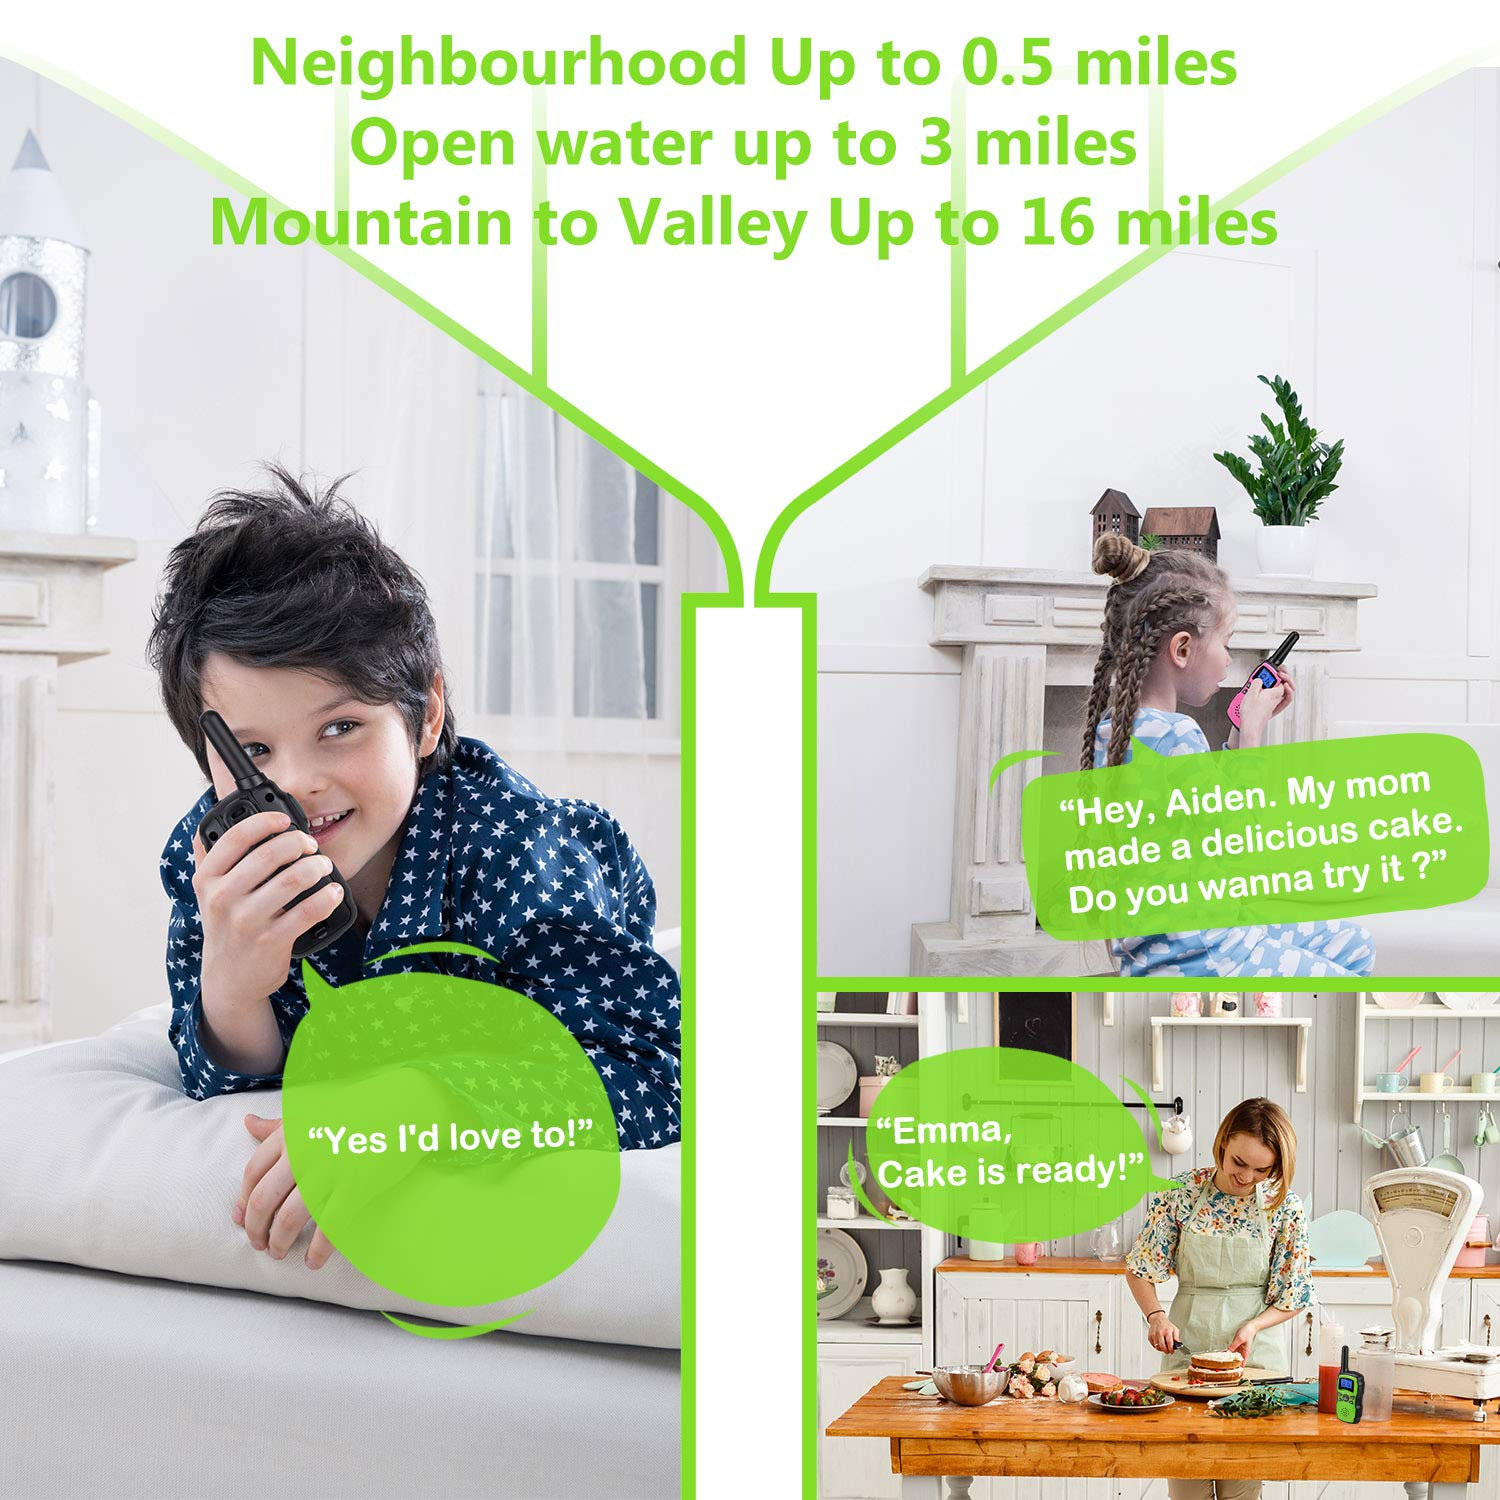 Wishouse 2 Rechargeable Walkie Talkies for Kids with Charger Battery, Two Way Radio Family Talkabout for Adult Cruise Ship Long Range, Outdoor Camping Hiking Fun Toy Birthday Gift for Girls Boys Green by Wishouse (Image #5)